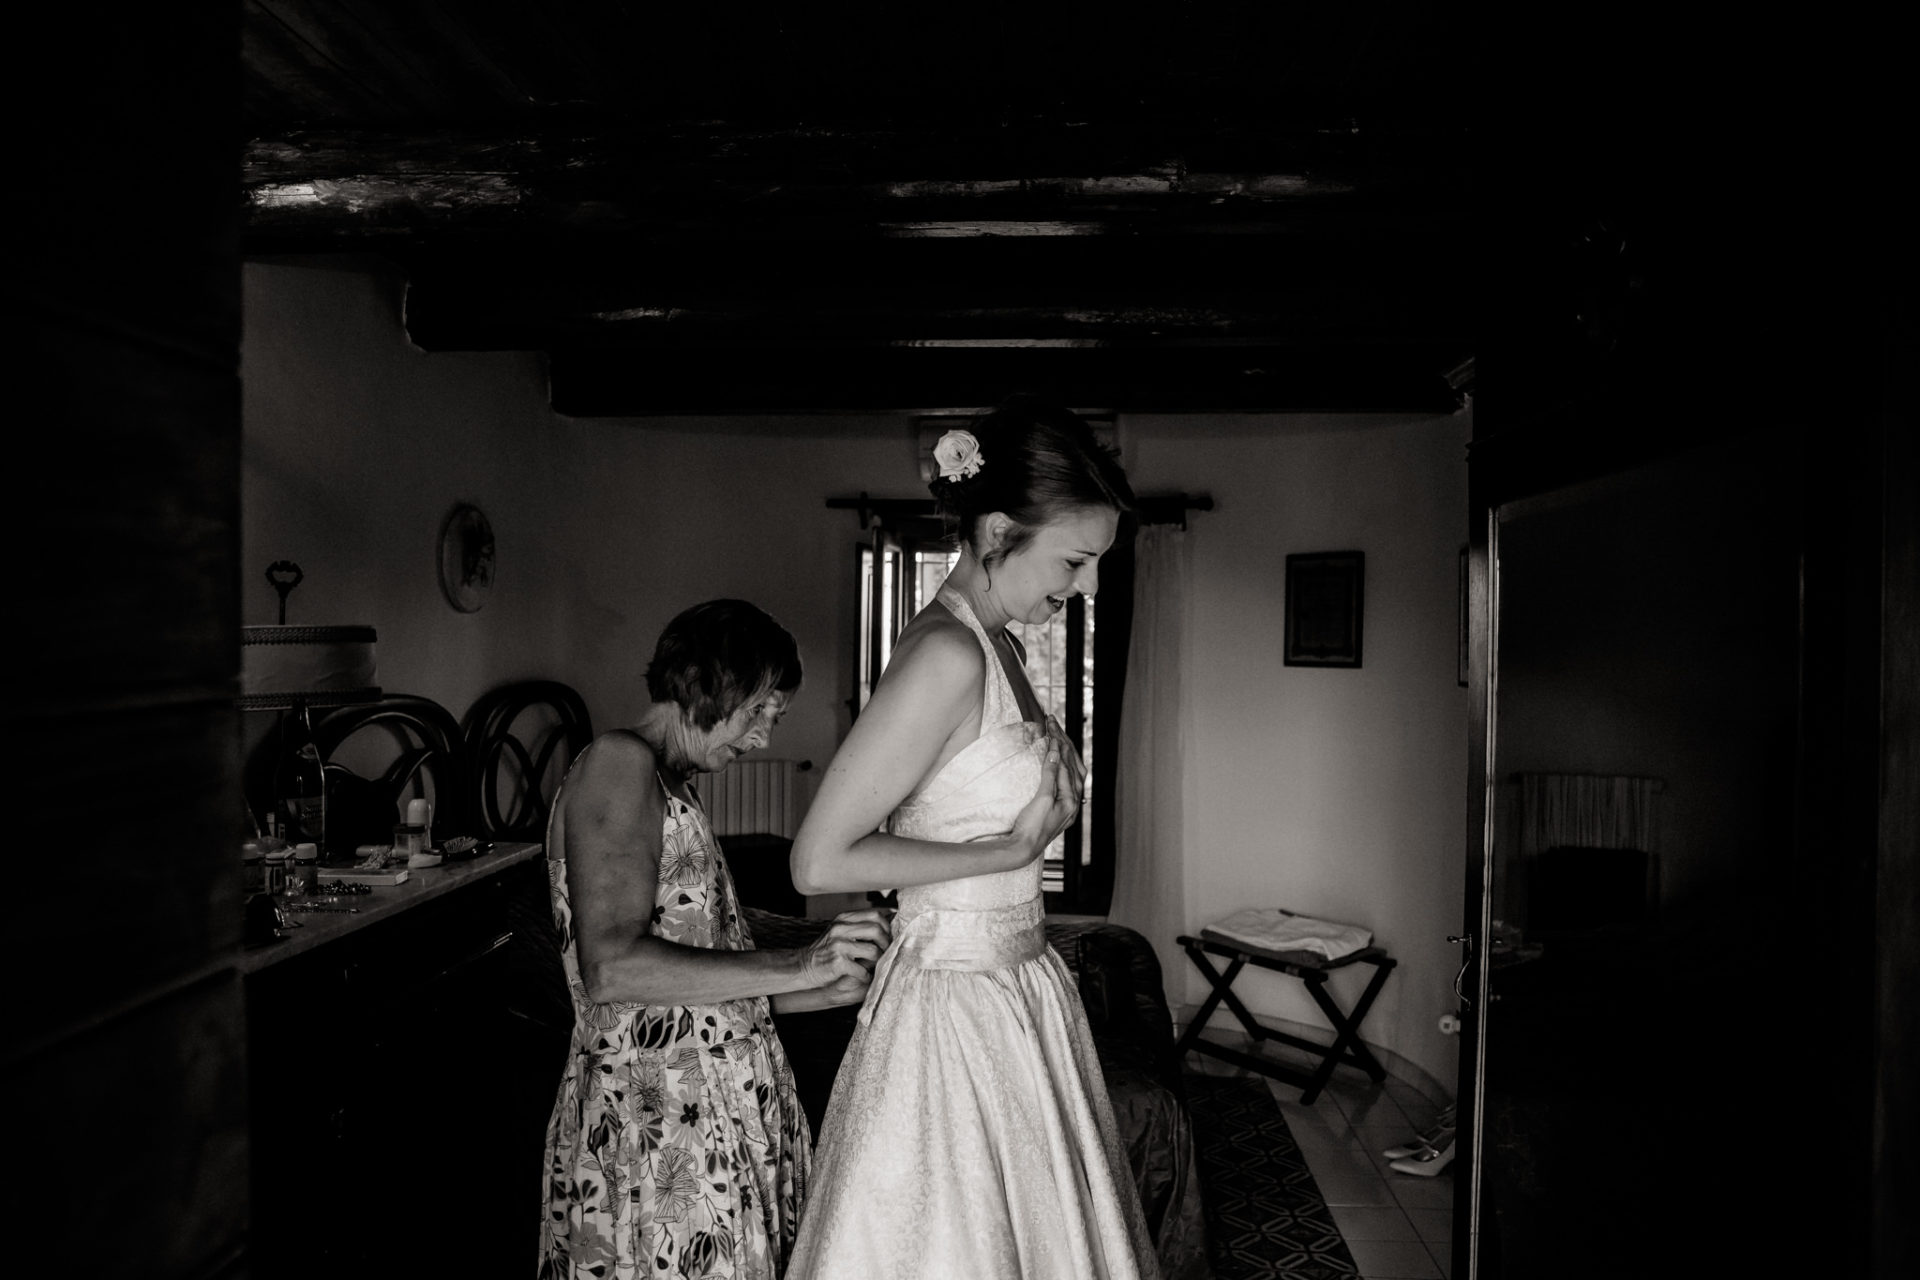 wedding photographer amalfi coast-italy wedding Paestum-bride getting ready